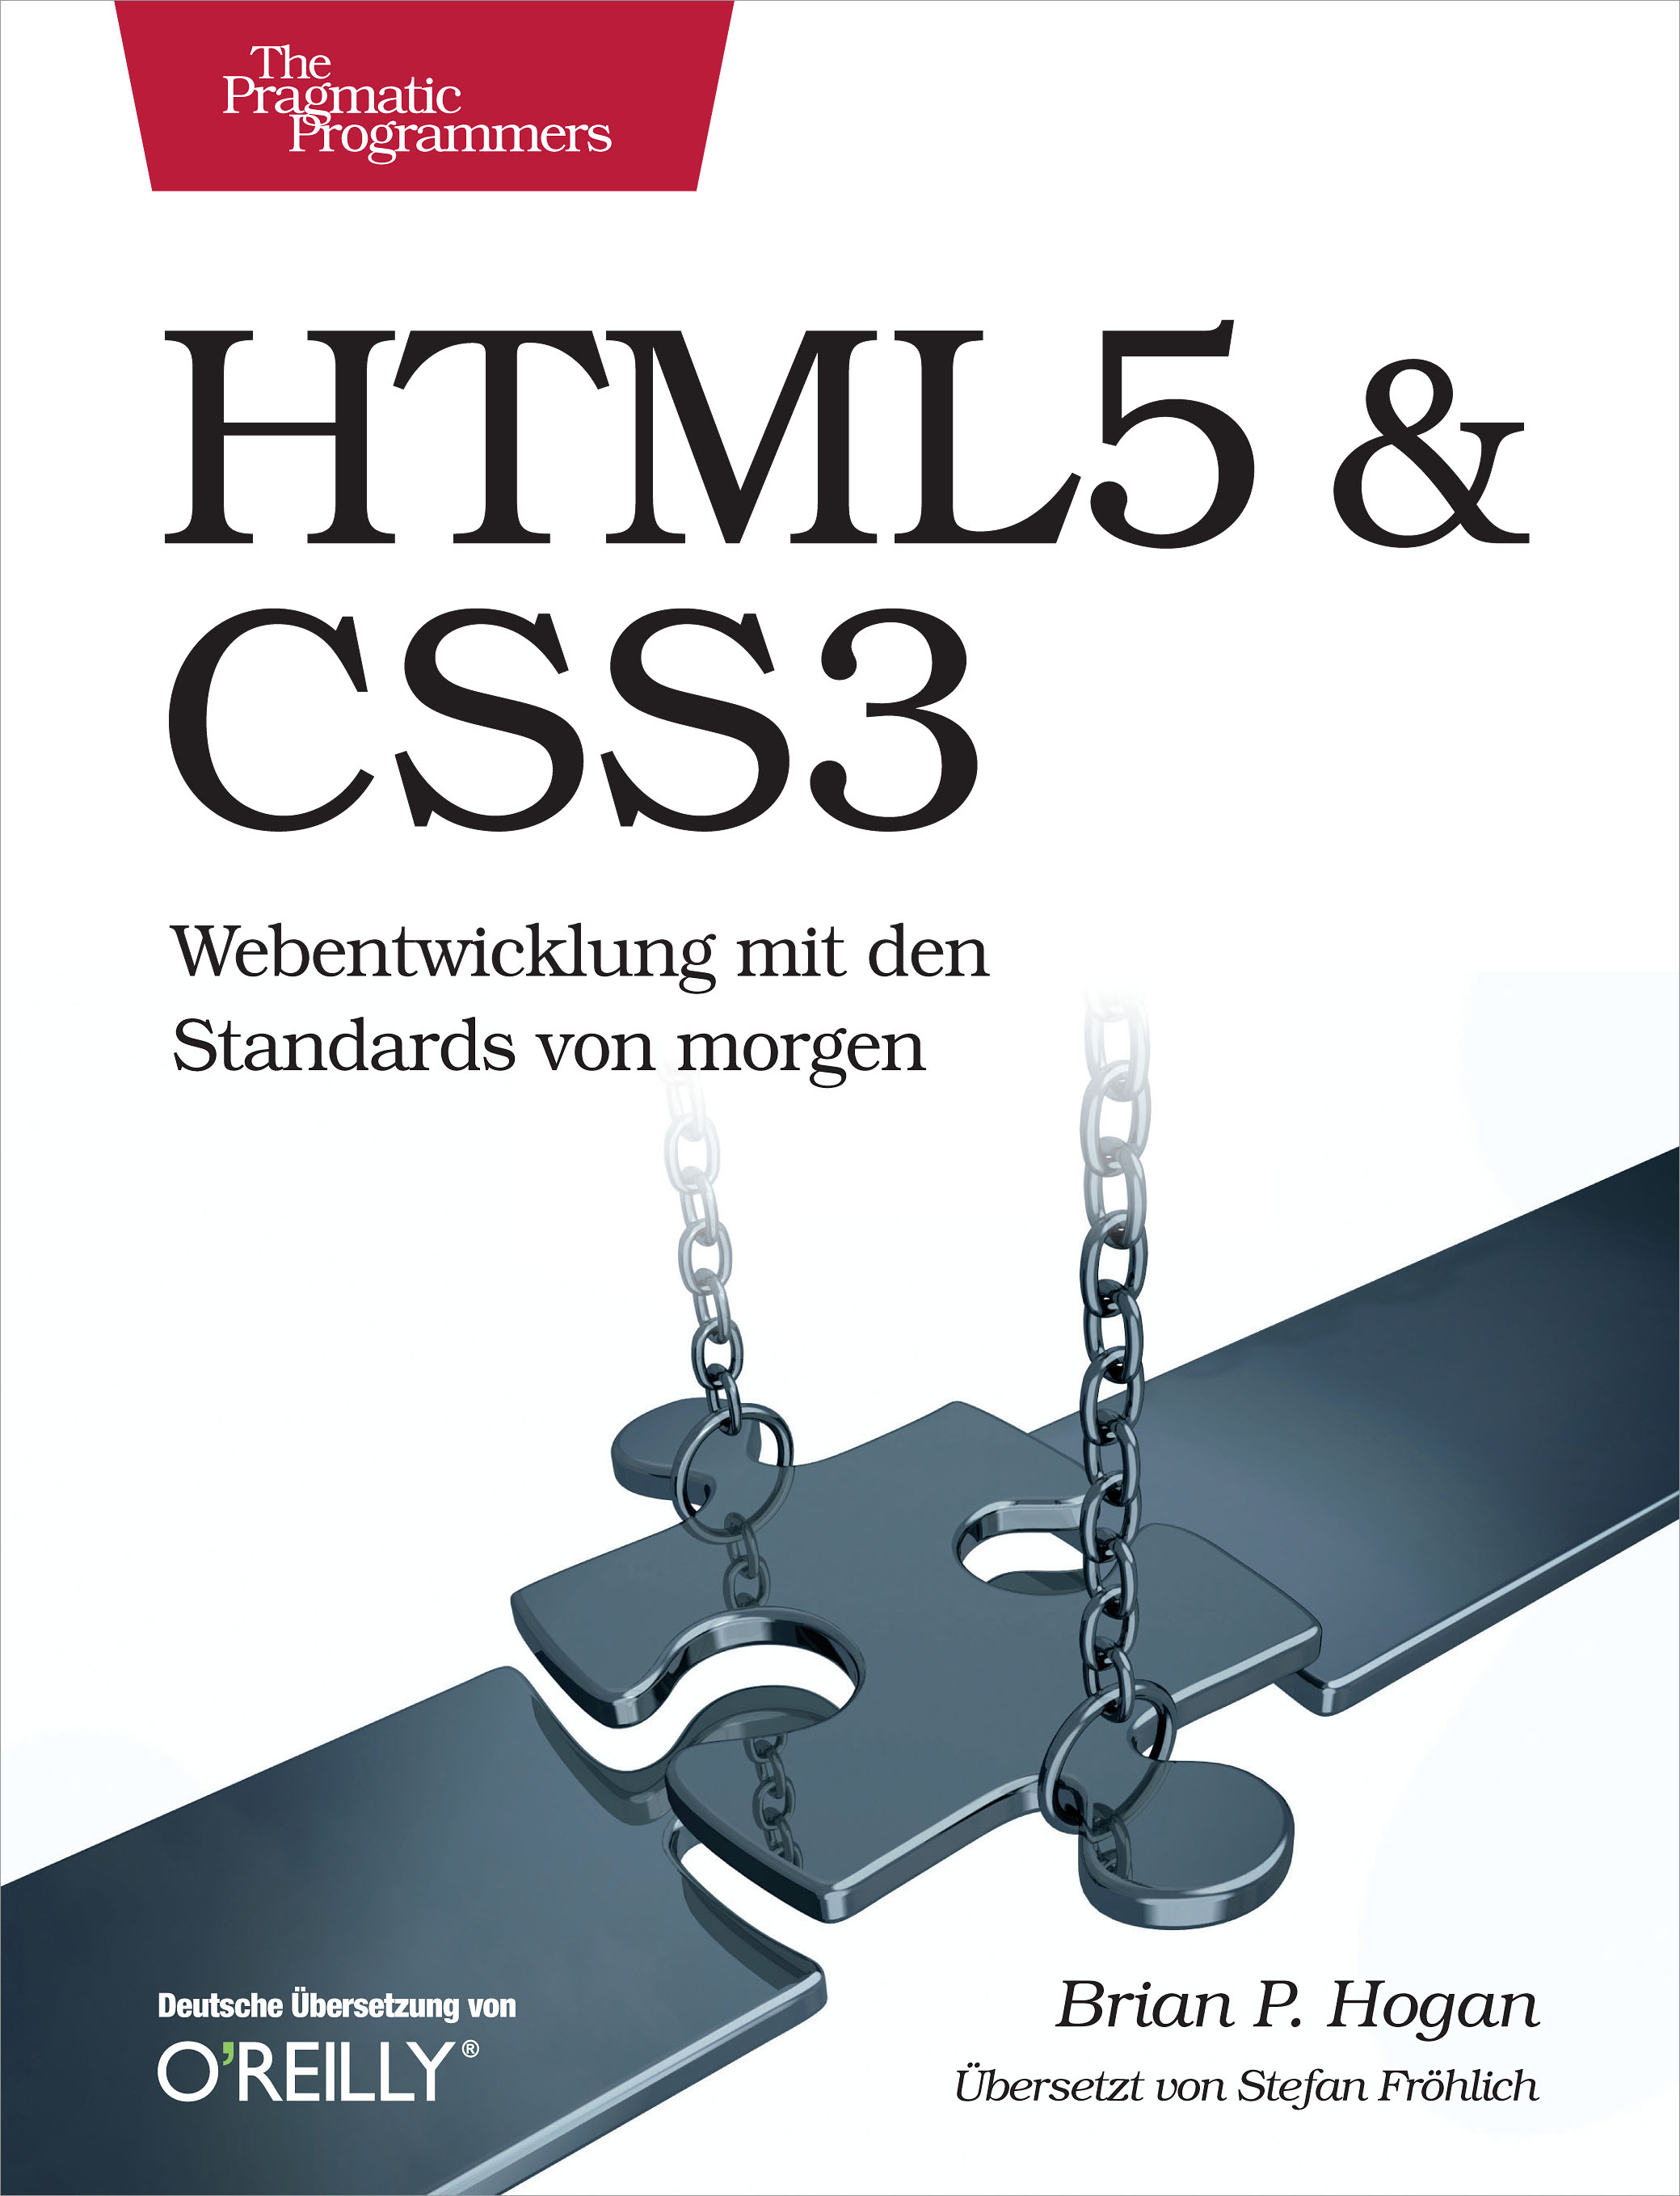 Brian P. Hogan HTML5 & CSS3 (Prags) leslie sikos web standards mastering html5 css3 and xml